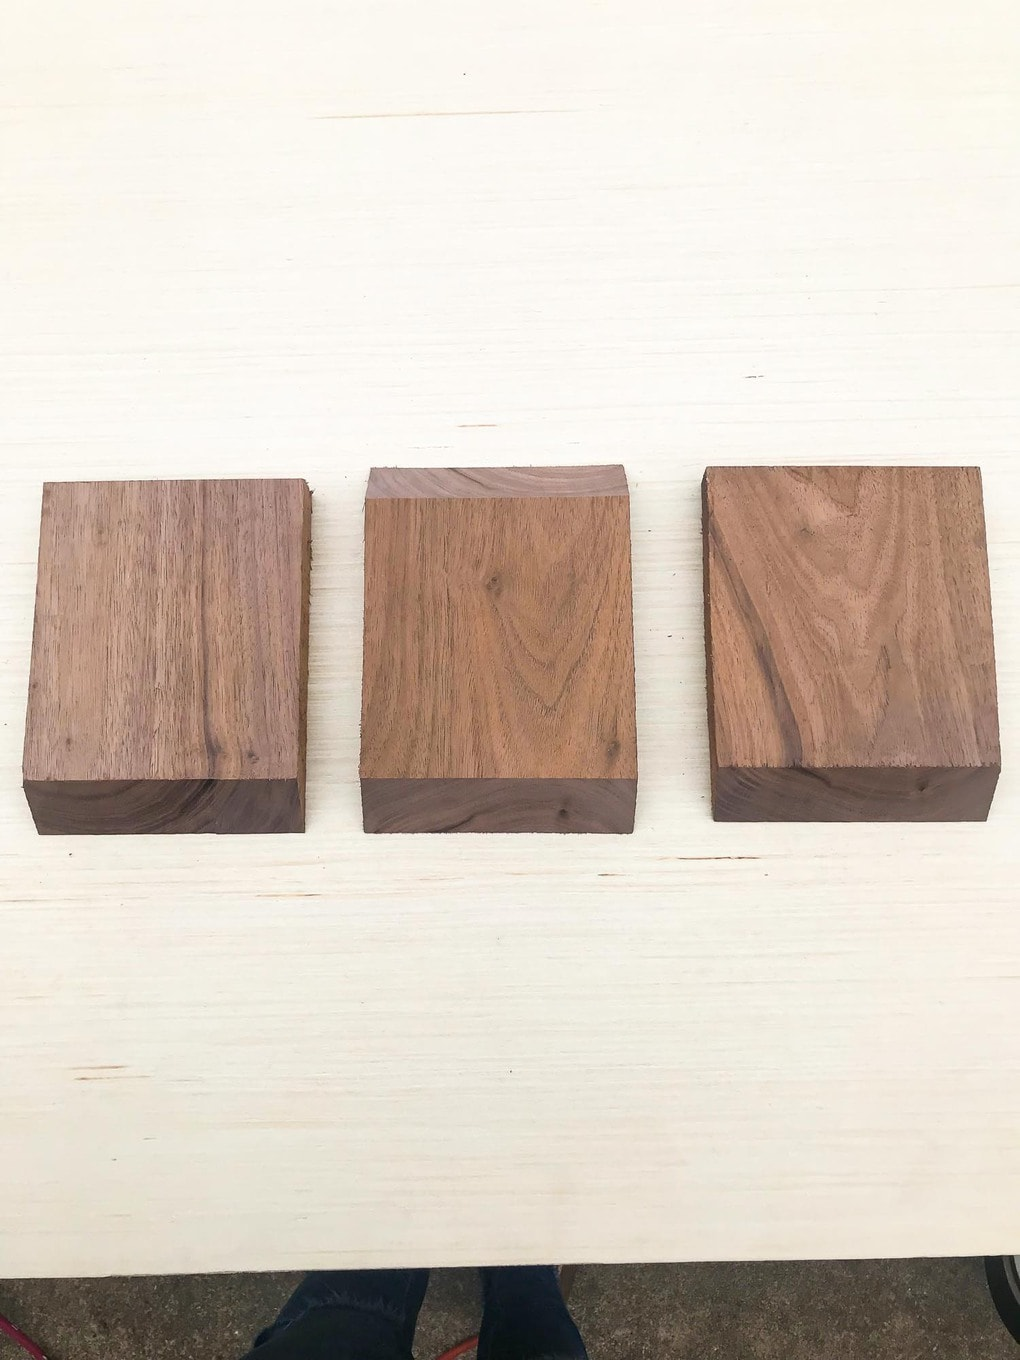 Three pieces of wood to be used to create sofa arm table